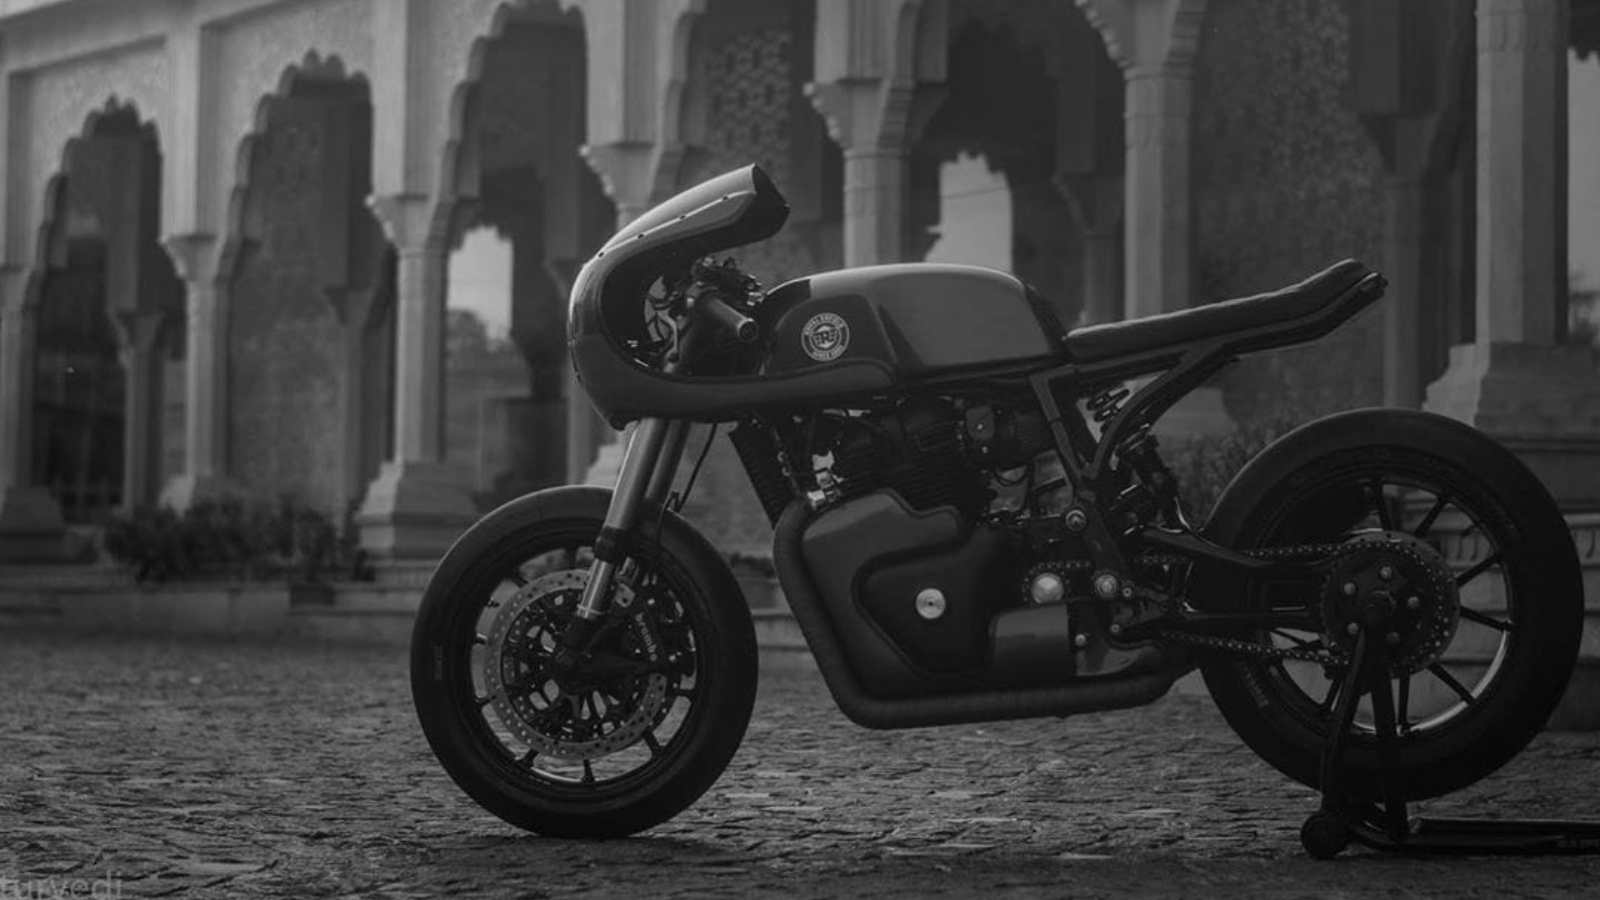 Rajputana Customs Work Their Magic On The Royal Enfield Continental Gt 650 Motoroids